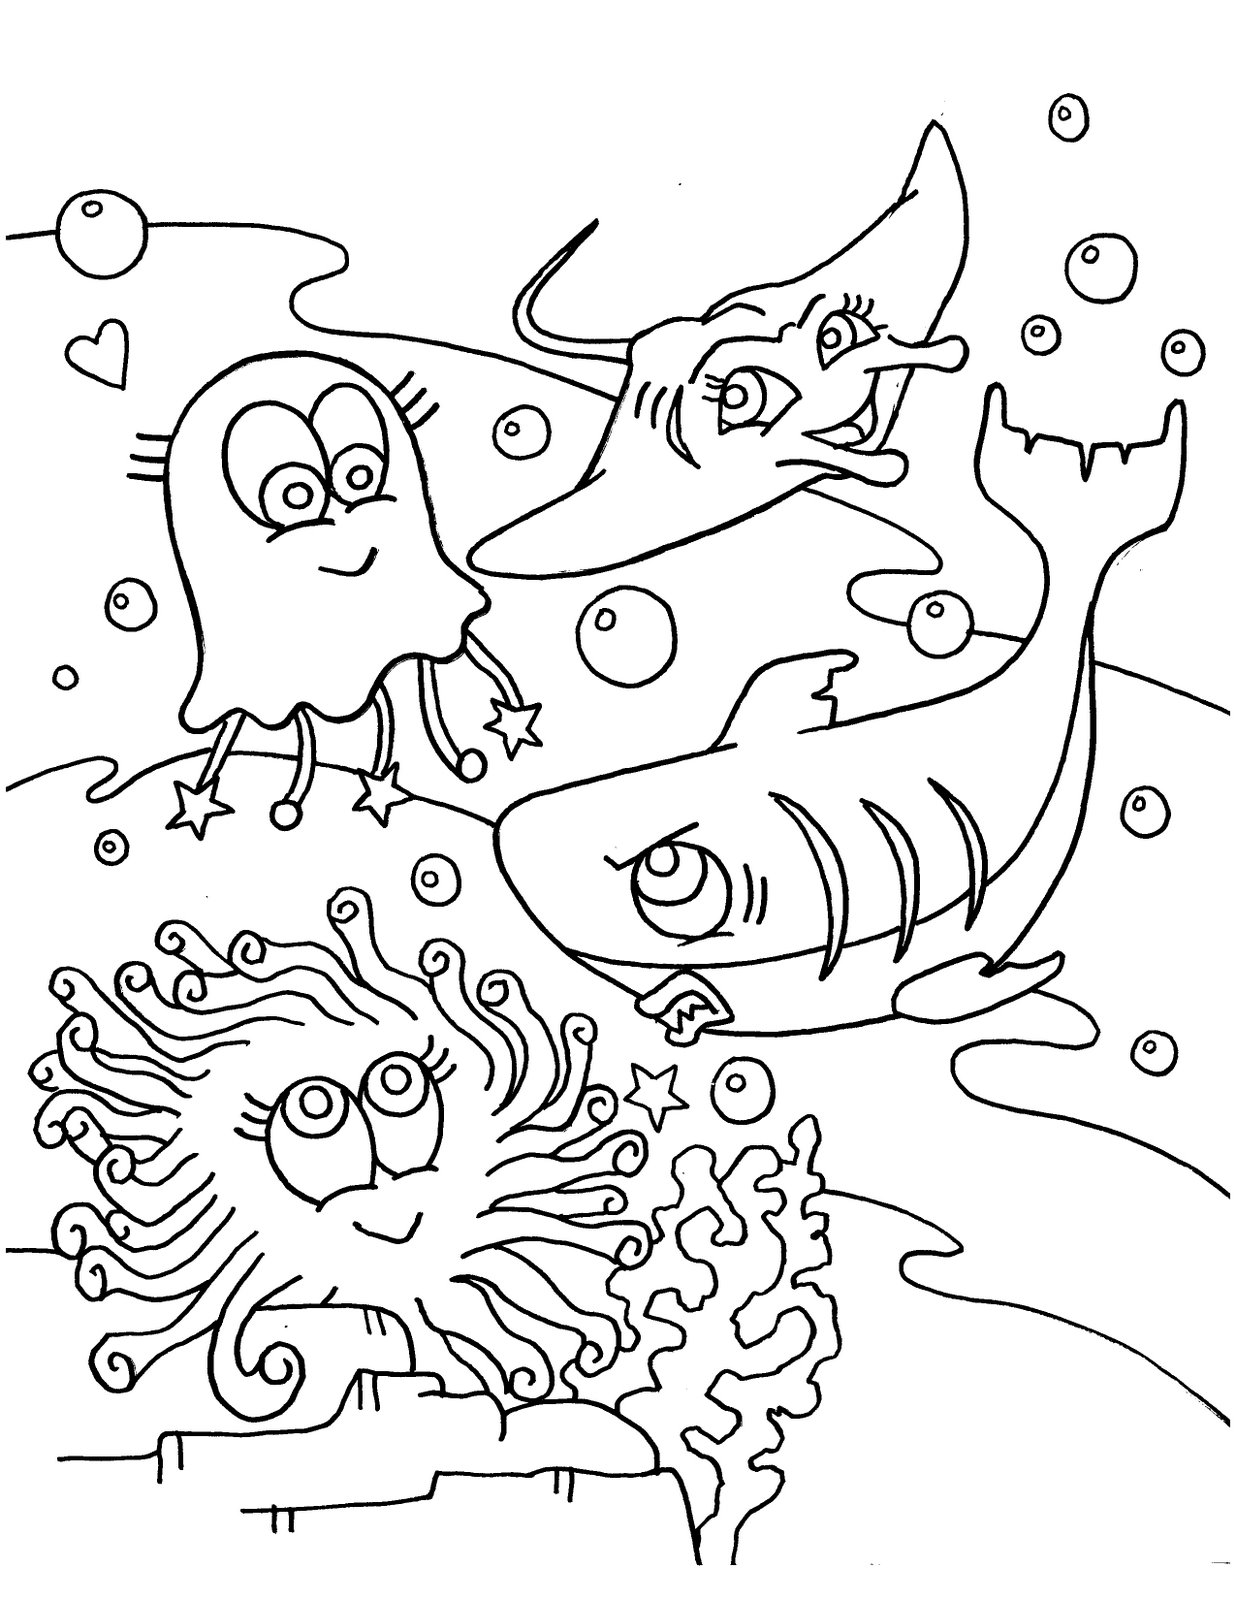 sea life animals coloring pages free printable ocean coloring pages for kids life pages coloring sea animals